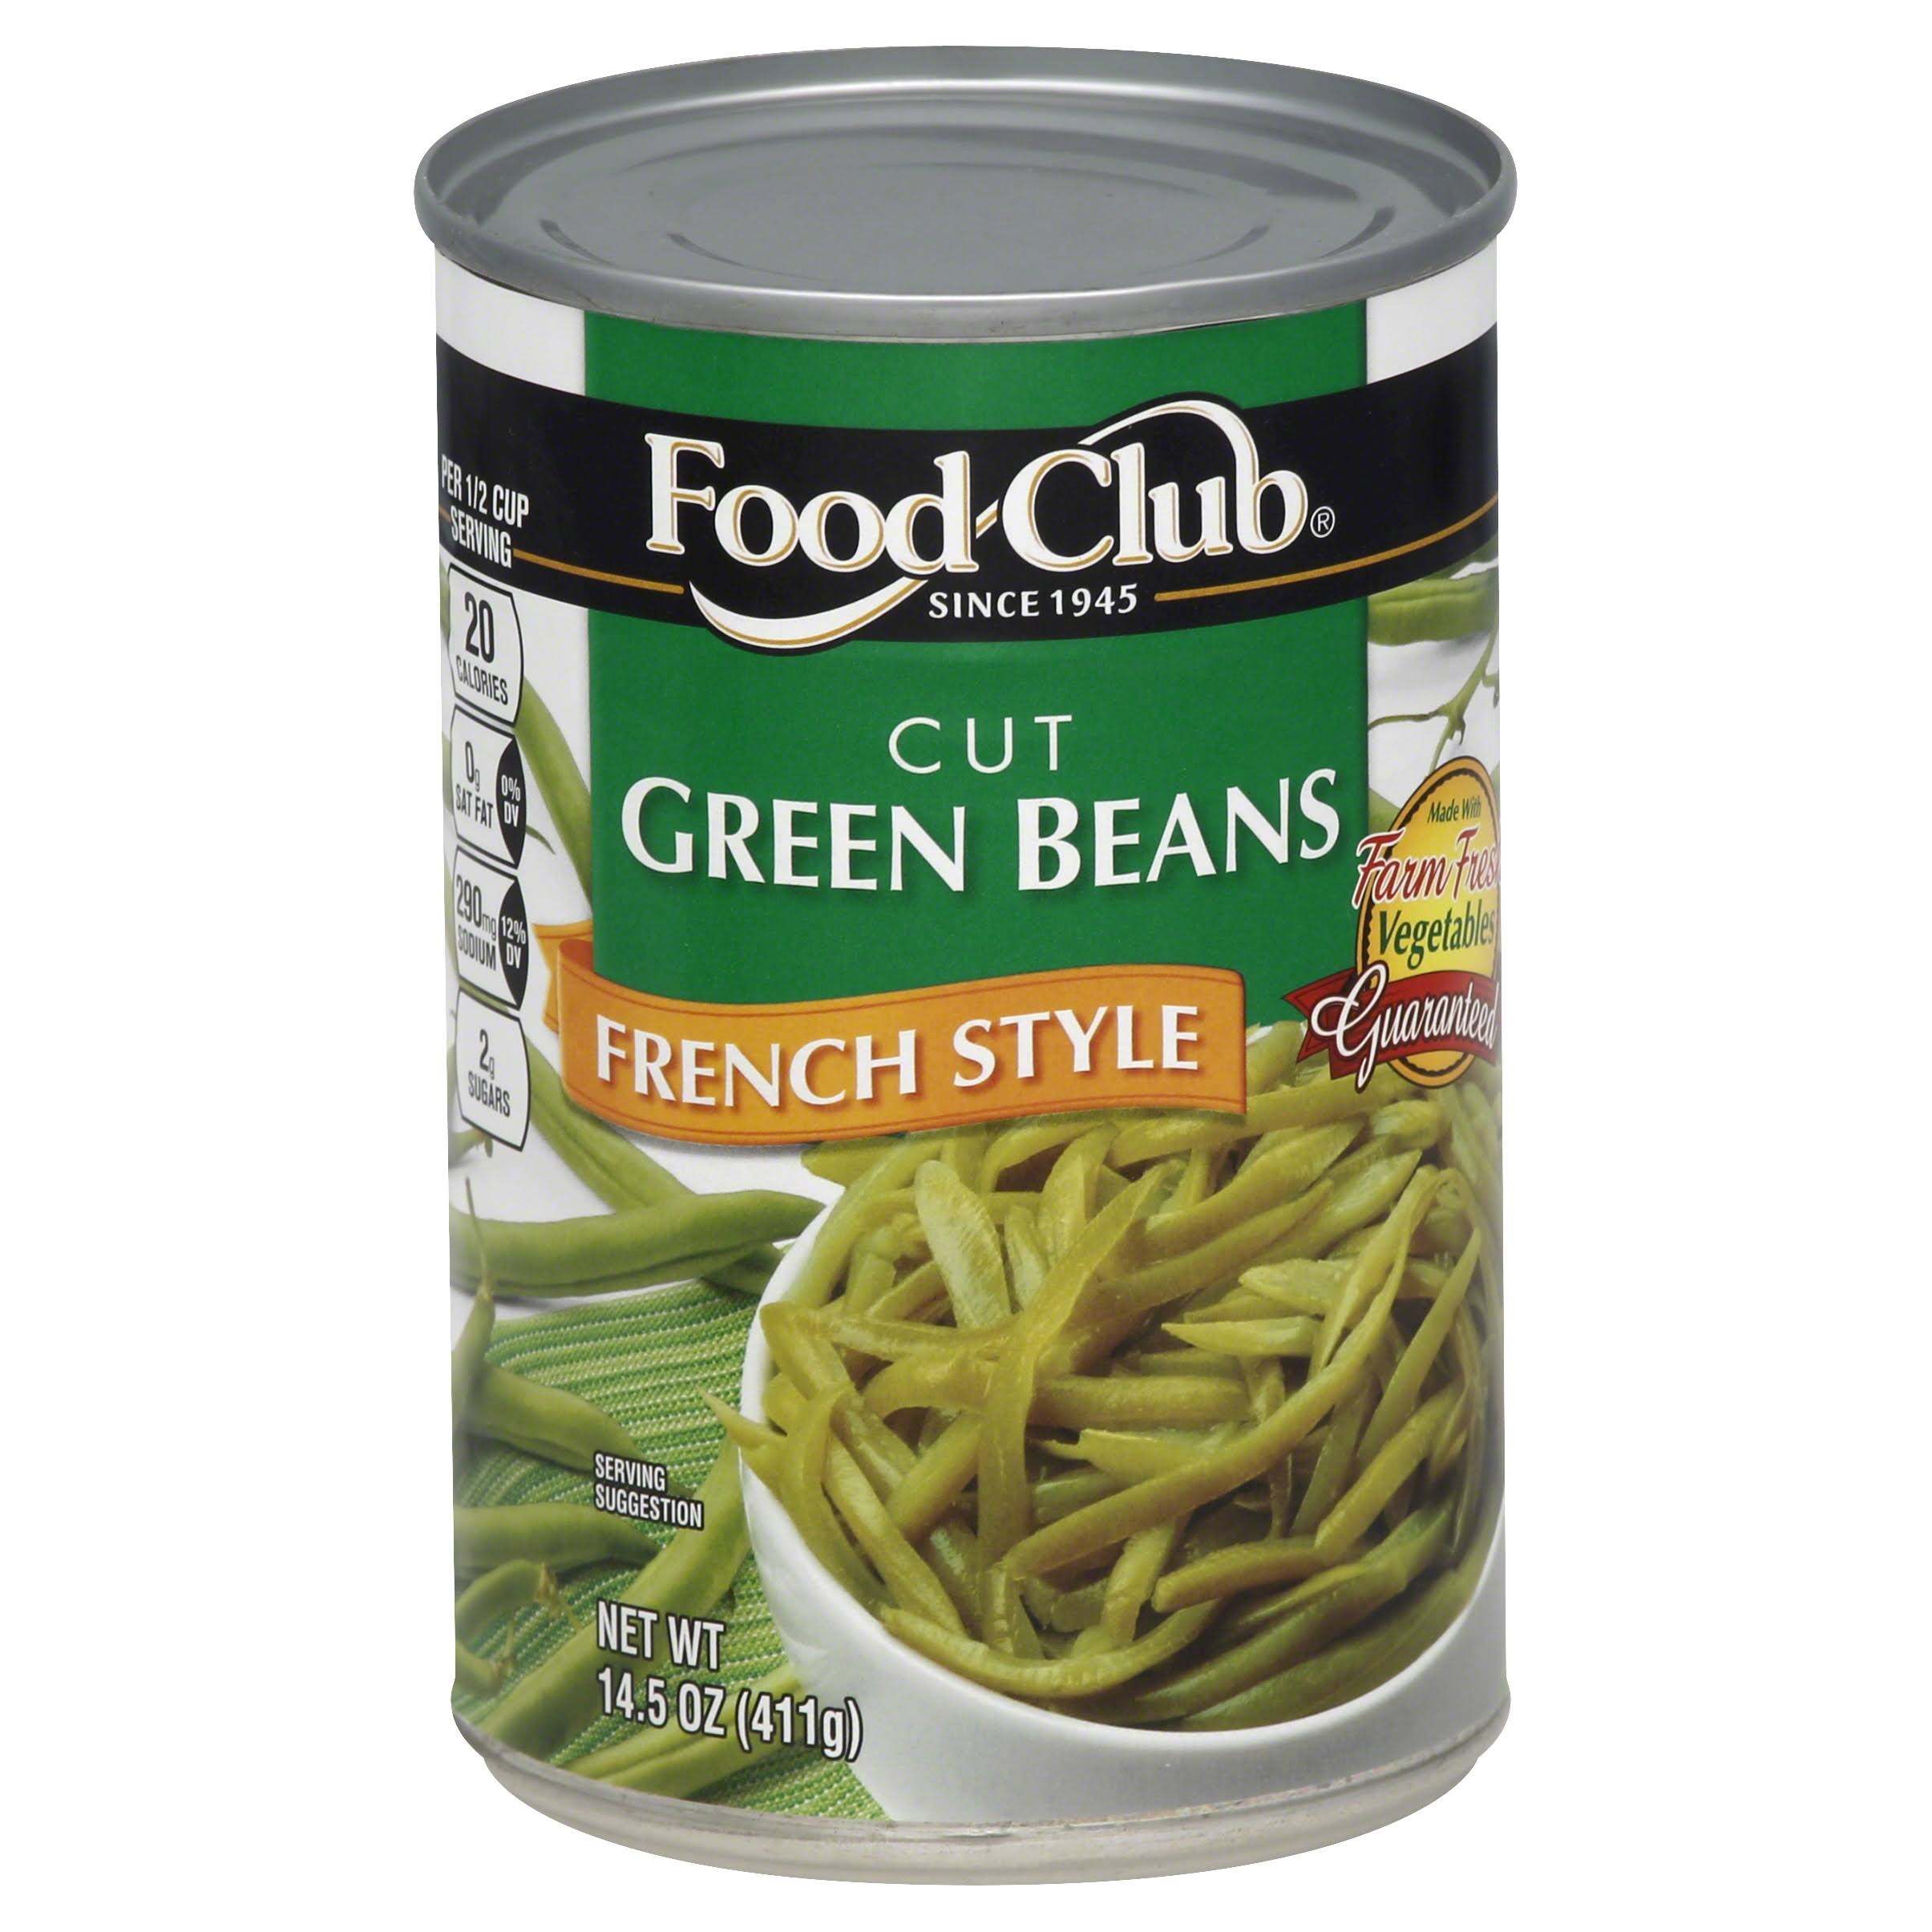 Food Club Green Beans - French Style, 14.5oz